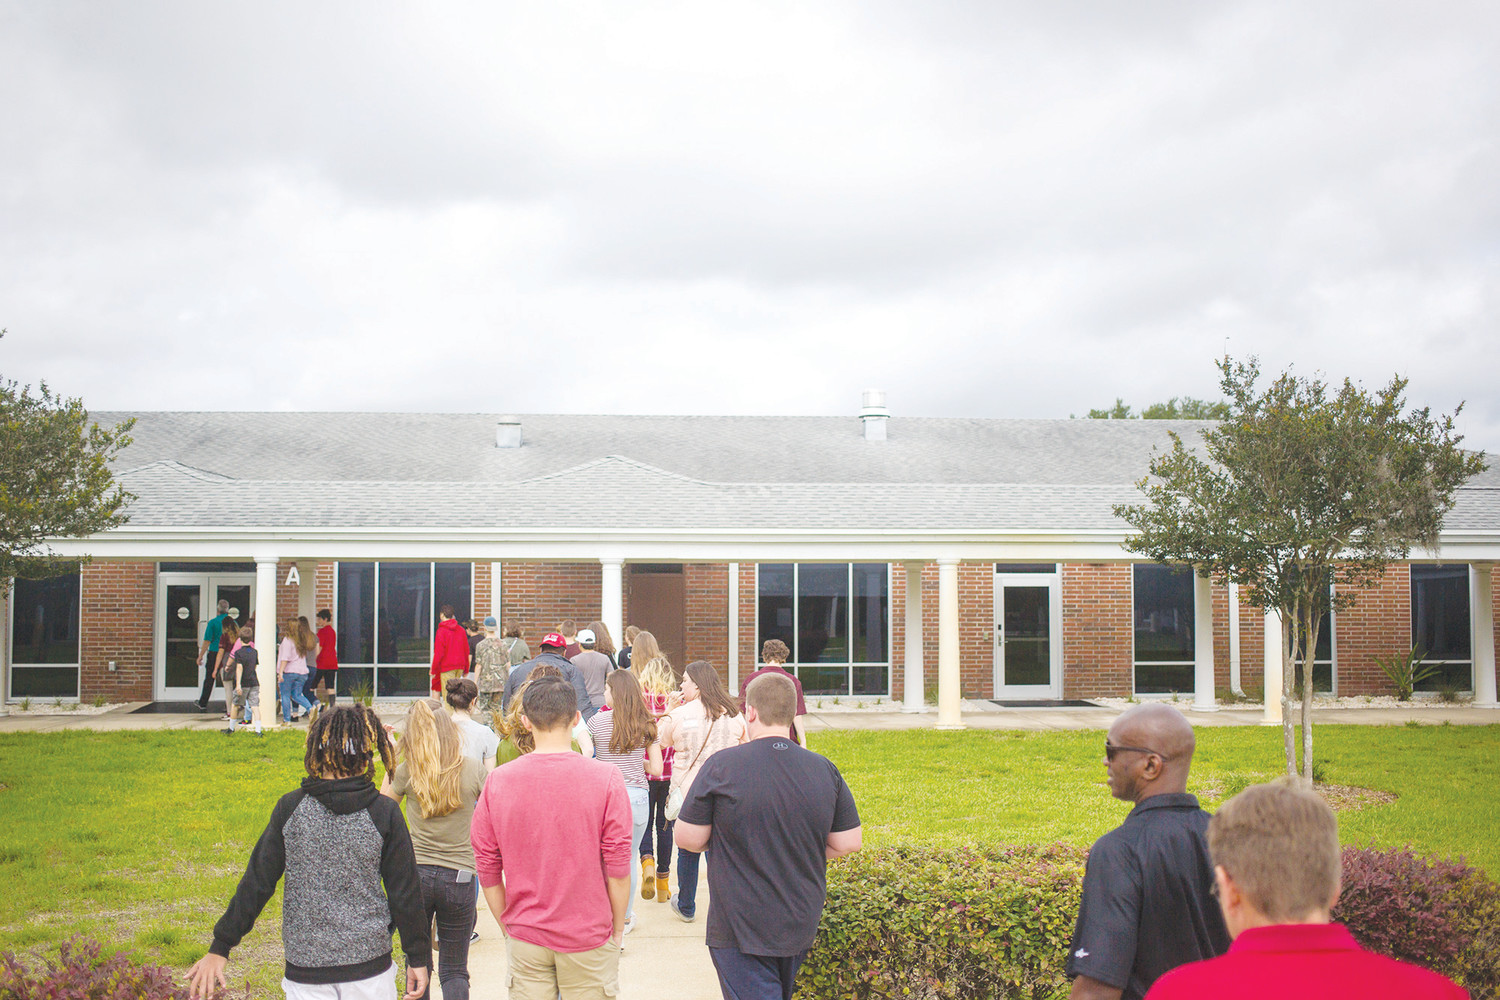 Wilkinson Junior High School students walk through the campus at St. Johns River State College Tuesday during a six-stop tour of the campus and some of their offerings for high school students and those just out of high school.